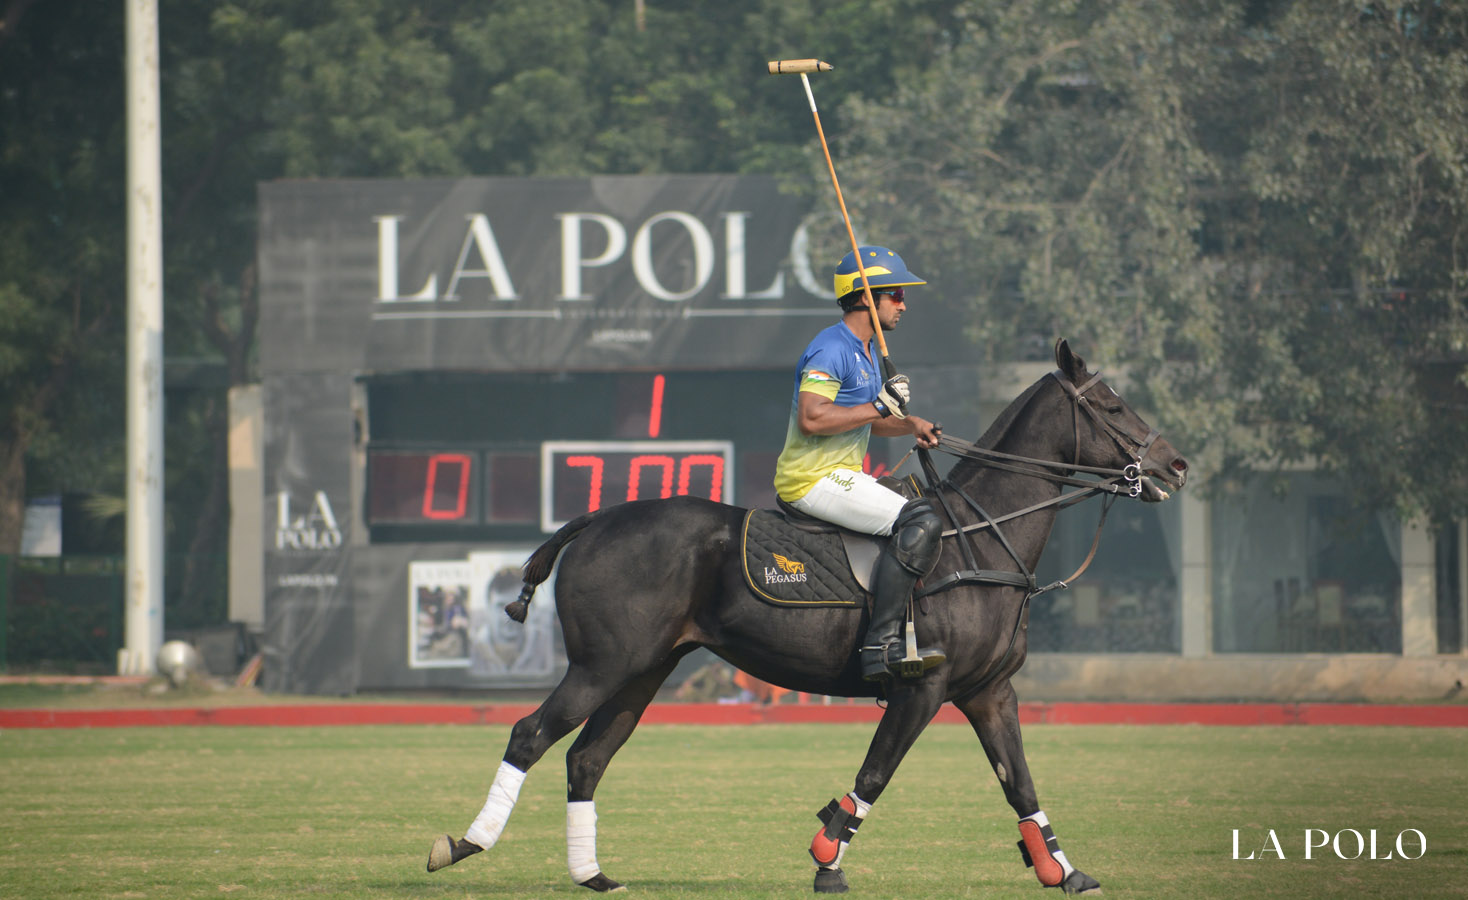 chukker in polo